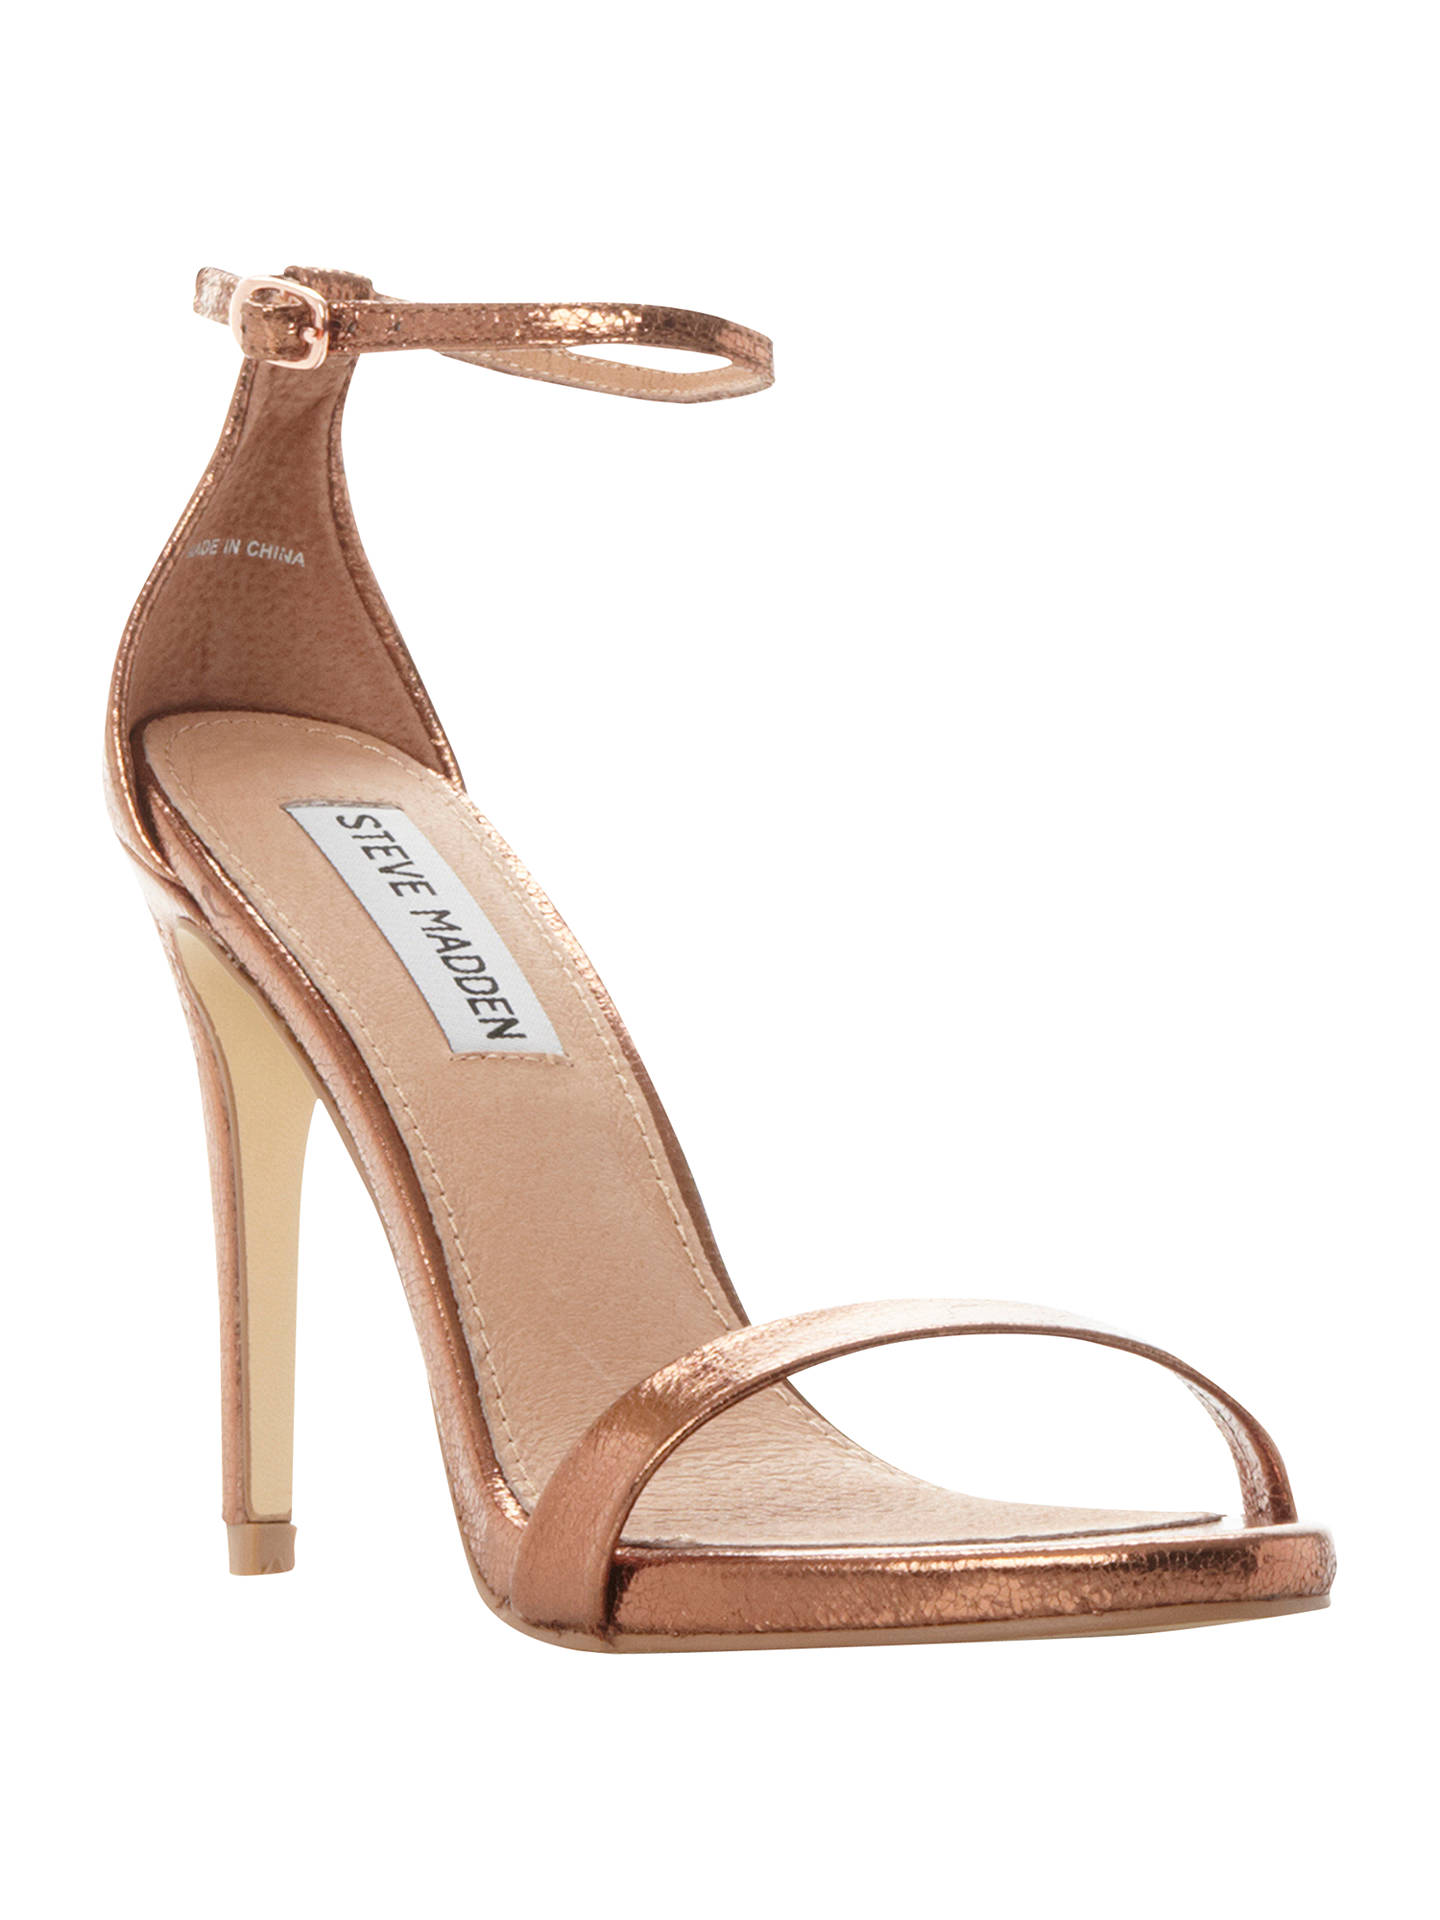 a96221beded Steve Madden Stecy Stiletto Sandals at John Lewis   Partners